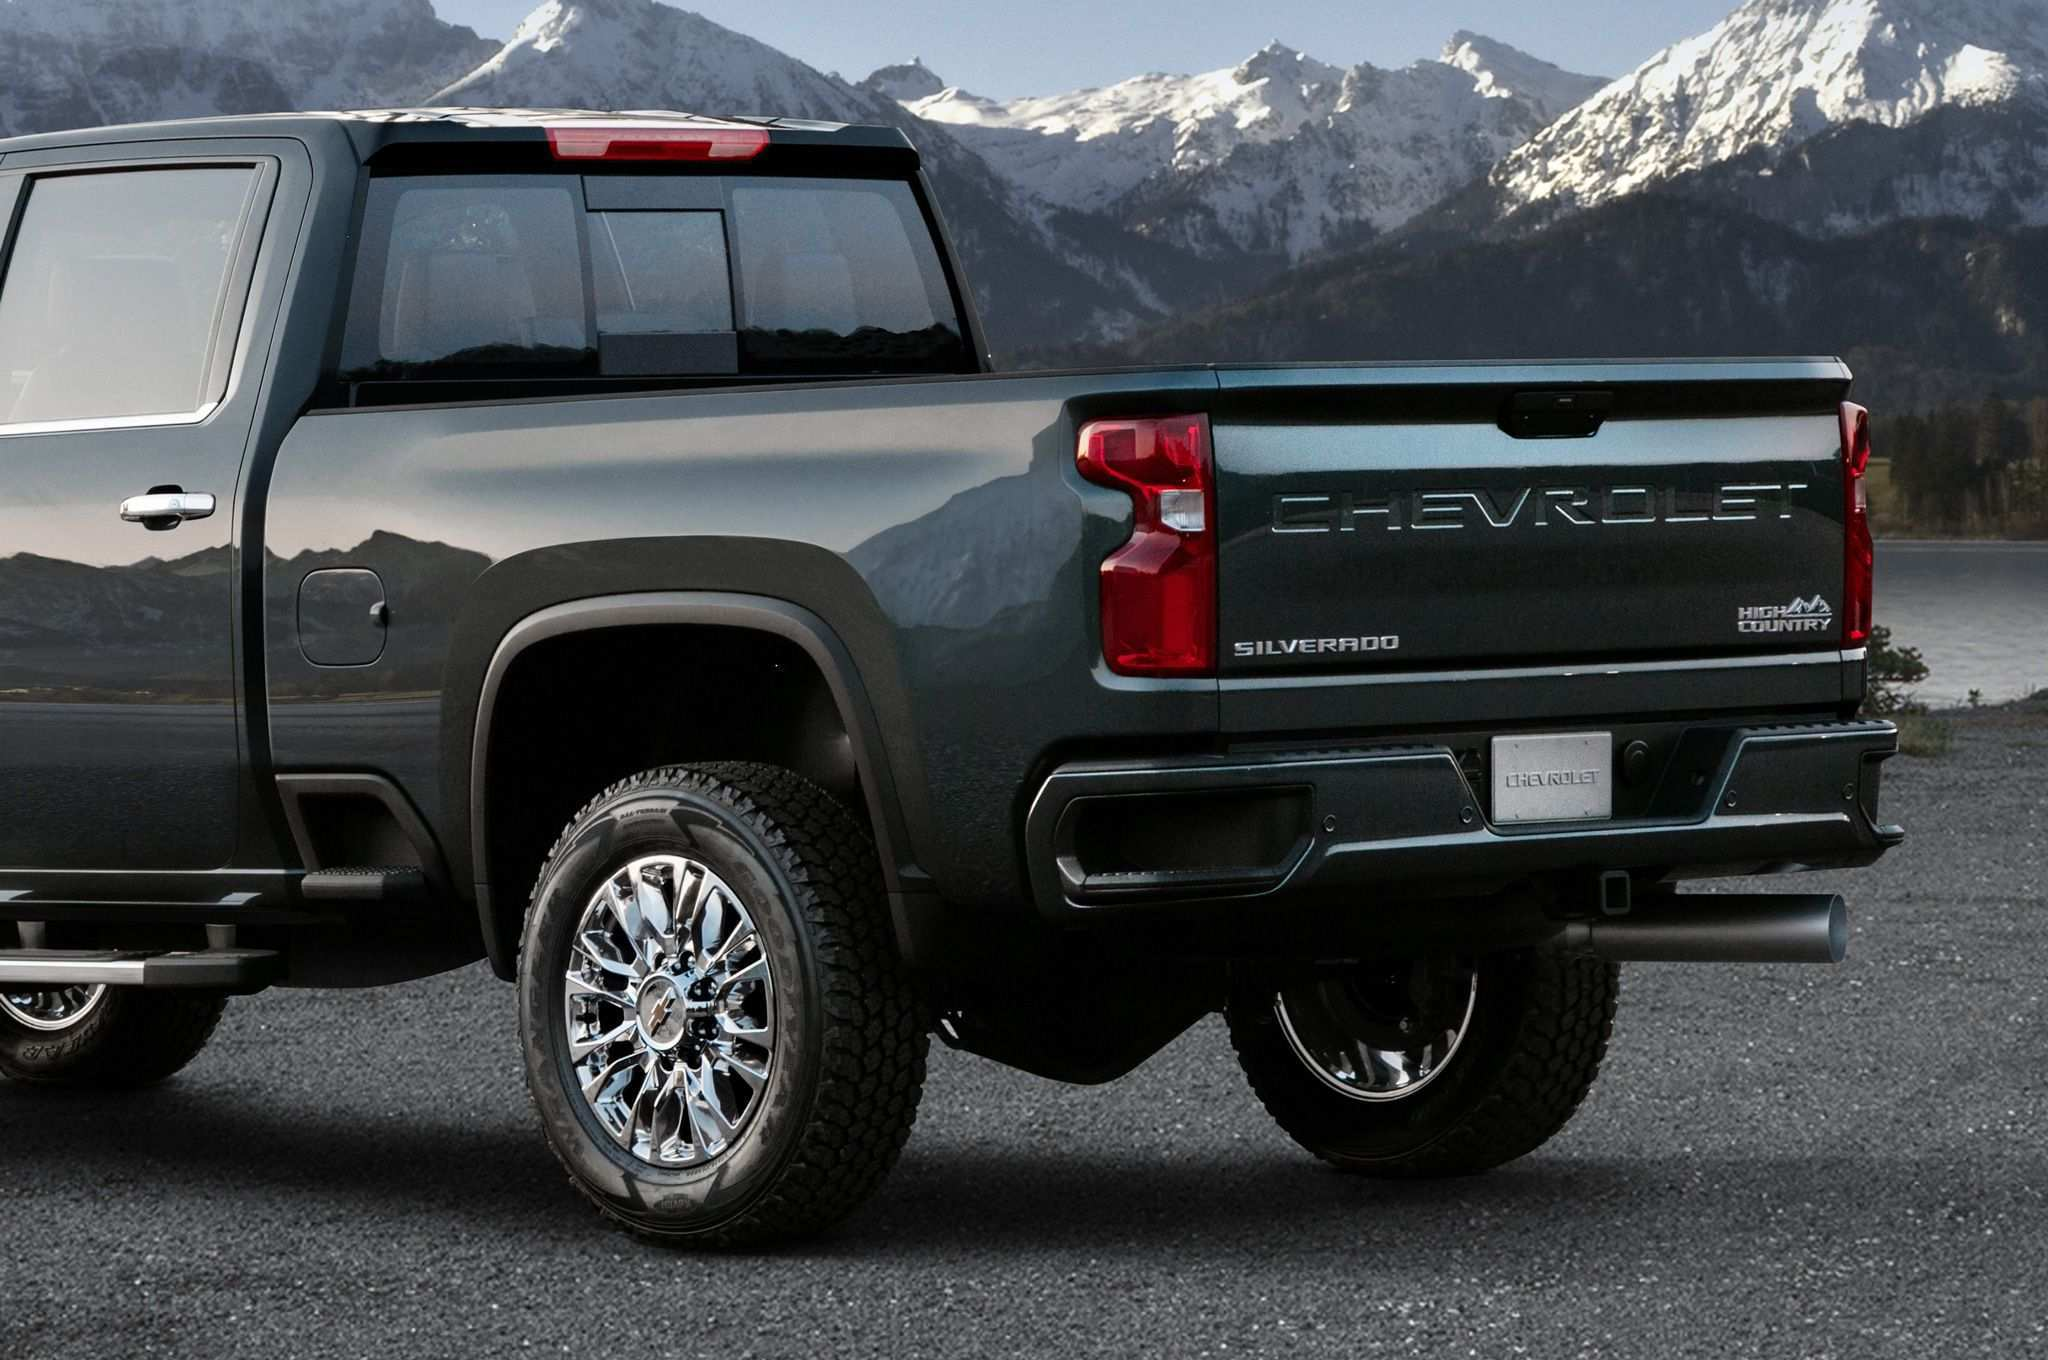 83 All New 2020 Silverado 1500 2500 Hd Specs And Review